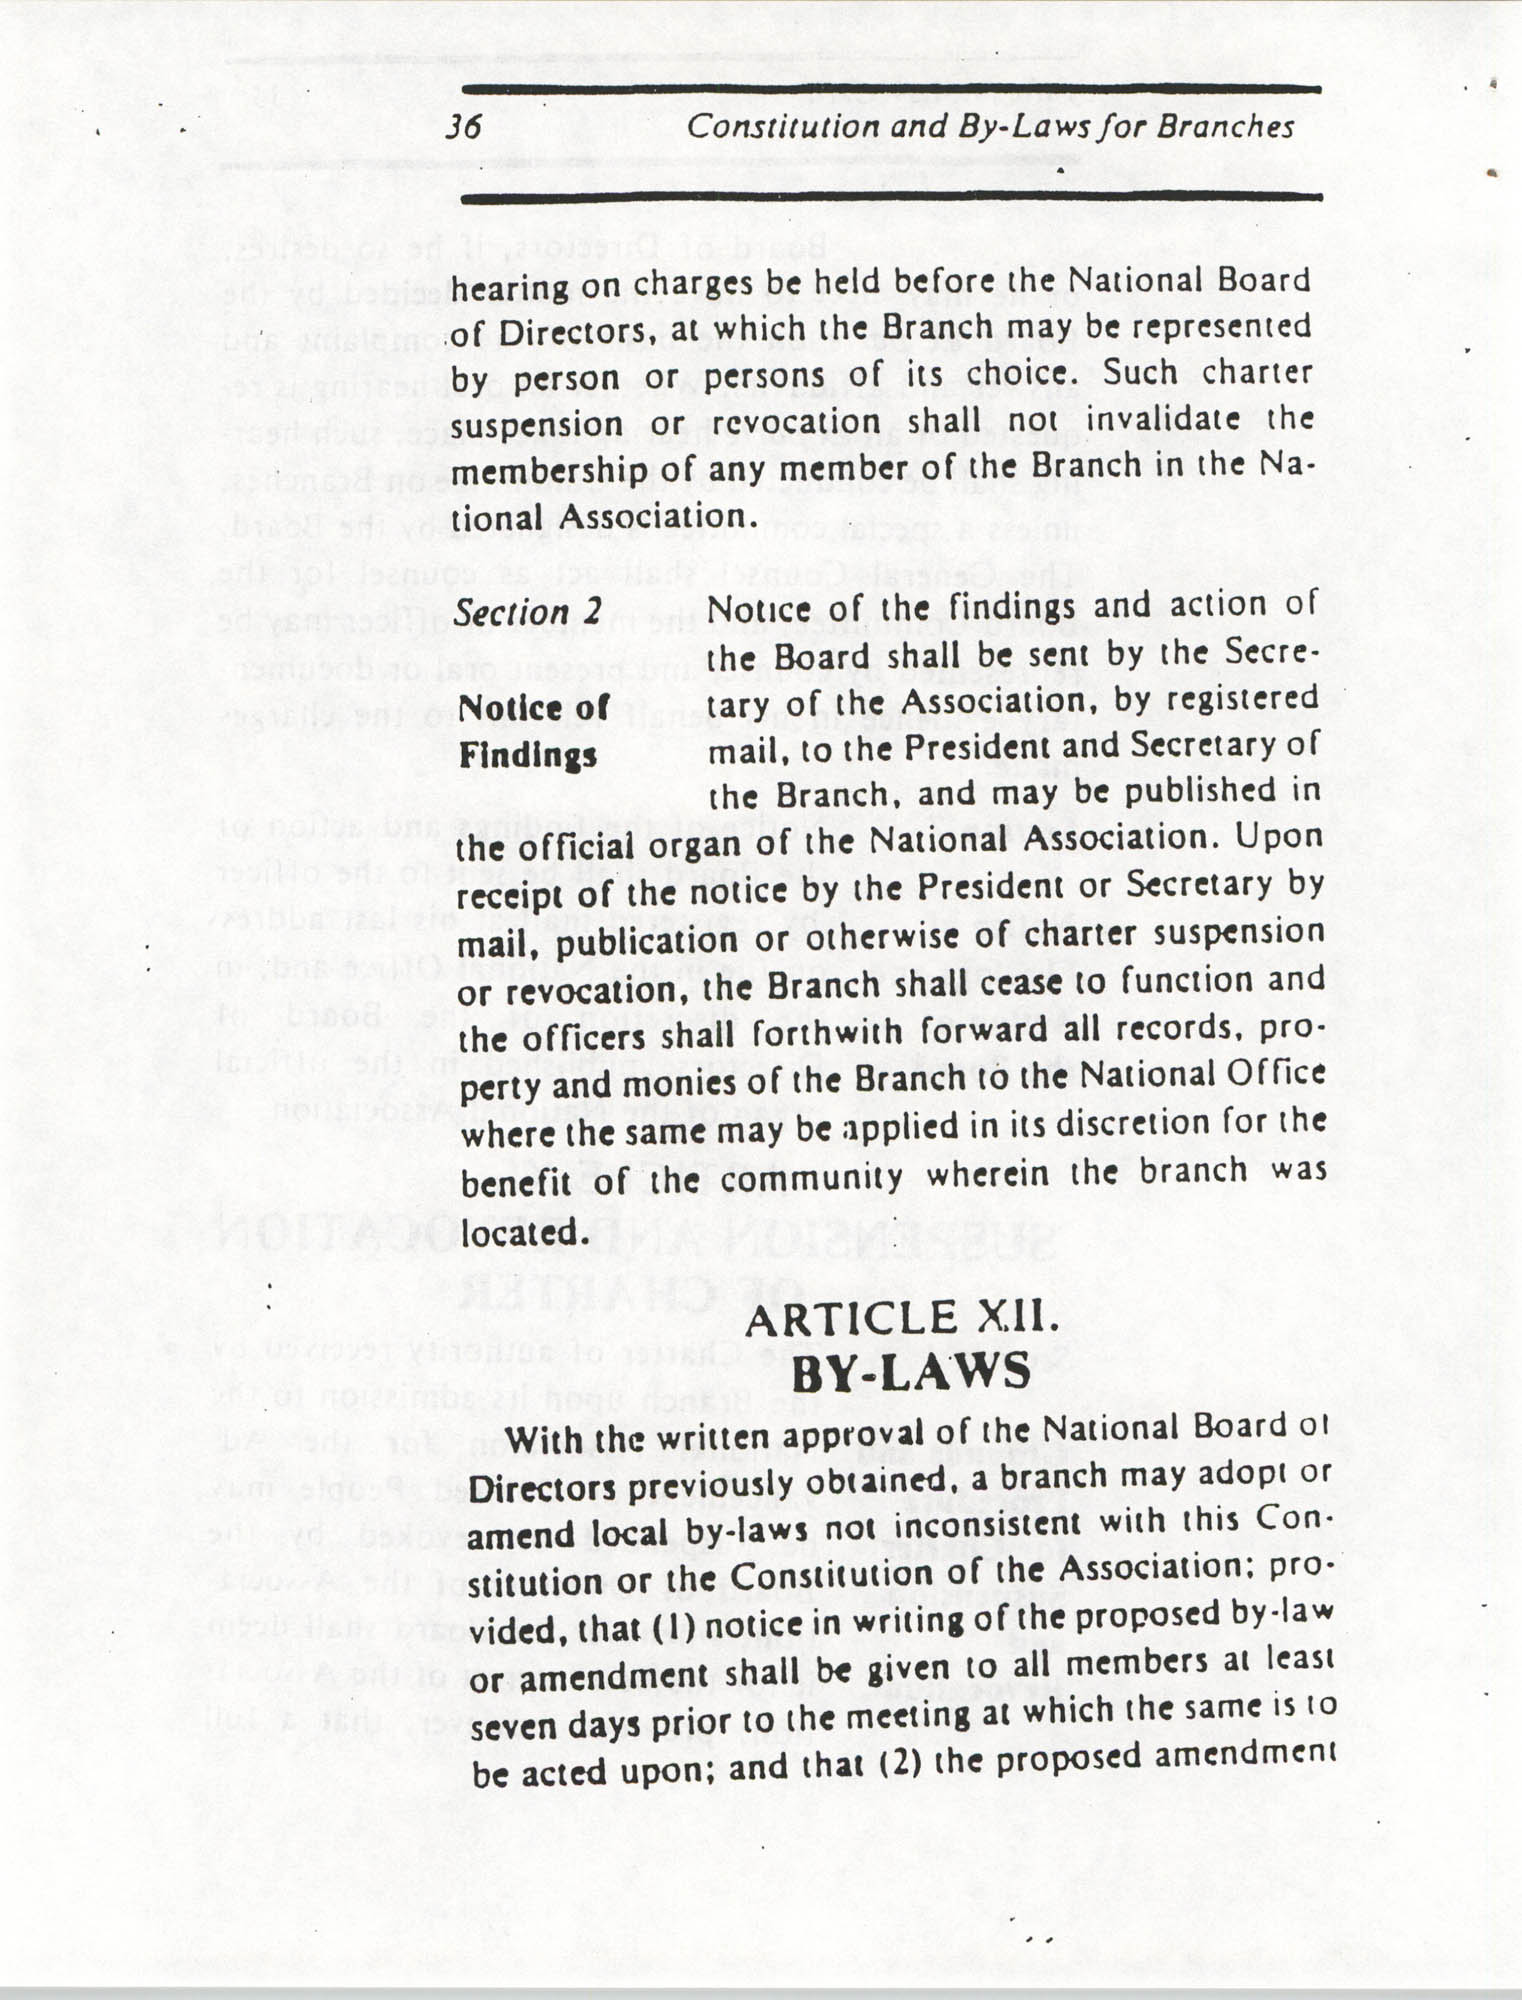 Constitution and By-Laws for Branches of the NAACP, March 1992, Page 36